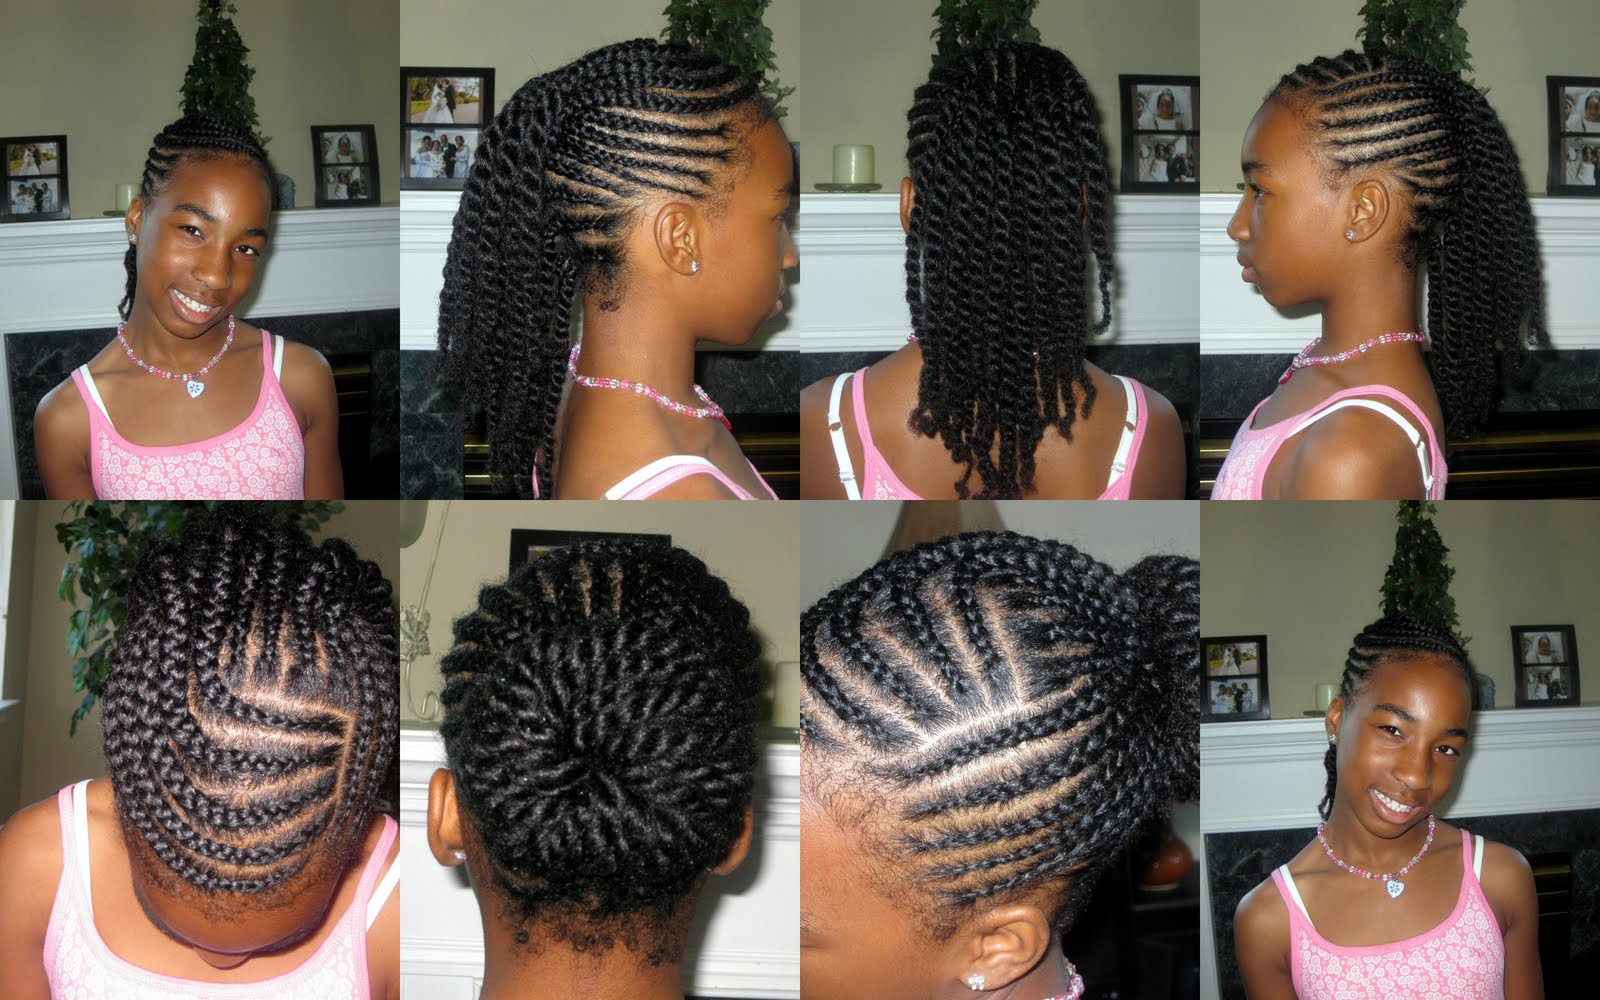 Braided Hairstyles For Black Girls With Long Hair